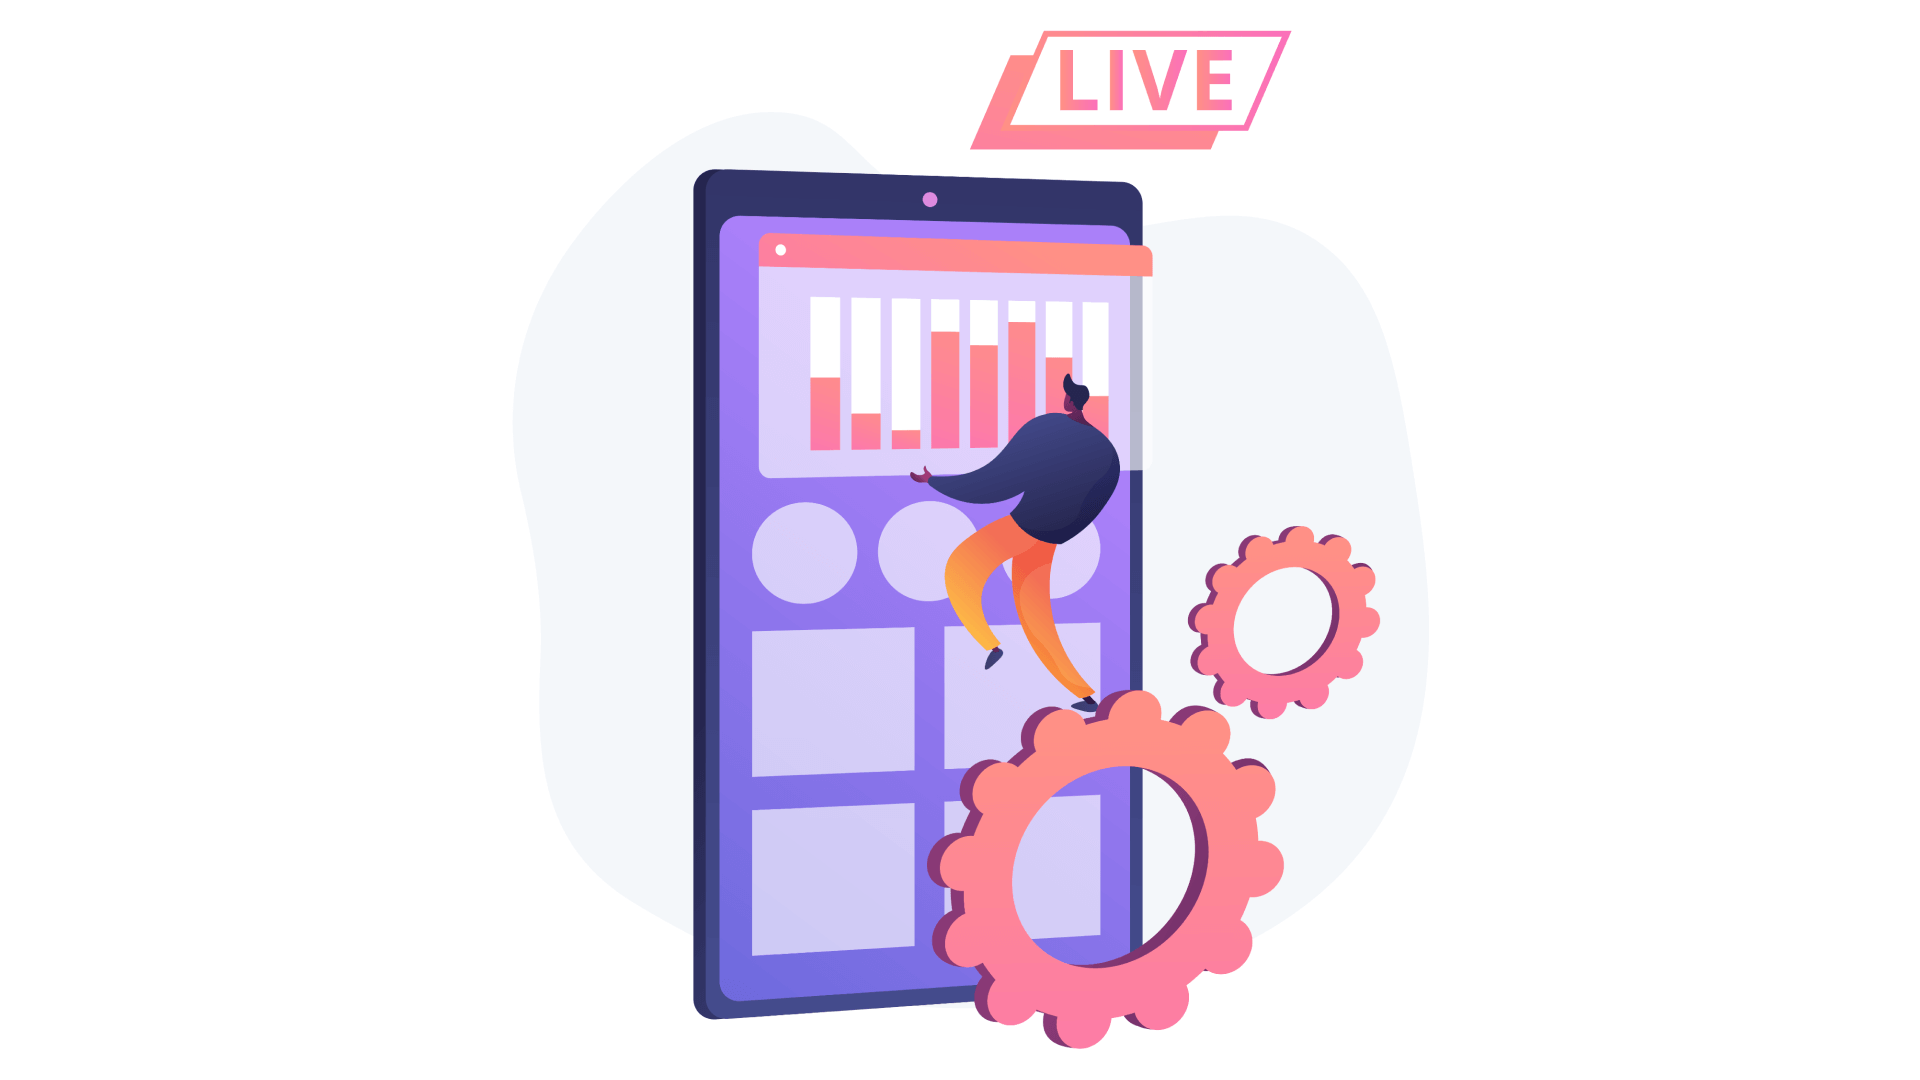 Each live streaming app requires a standard set of features that may be expanded depending on the app owner's business objectives.